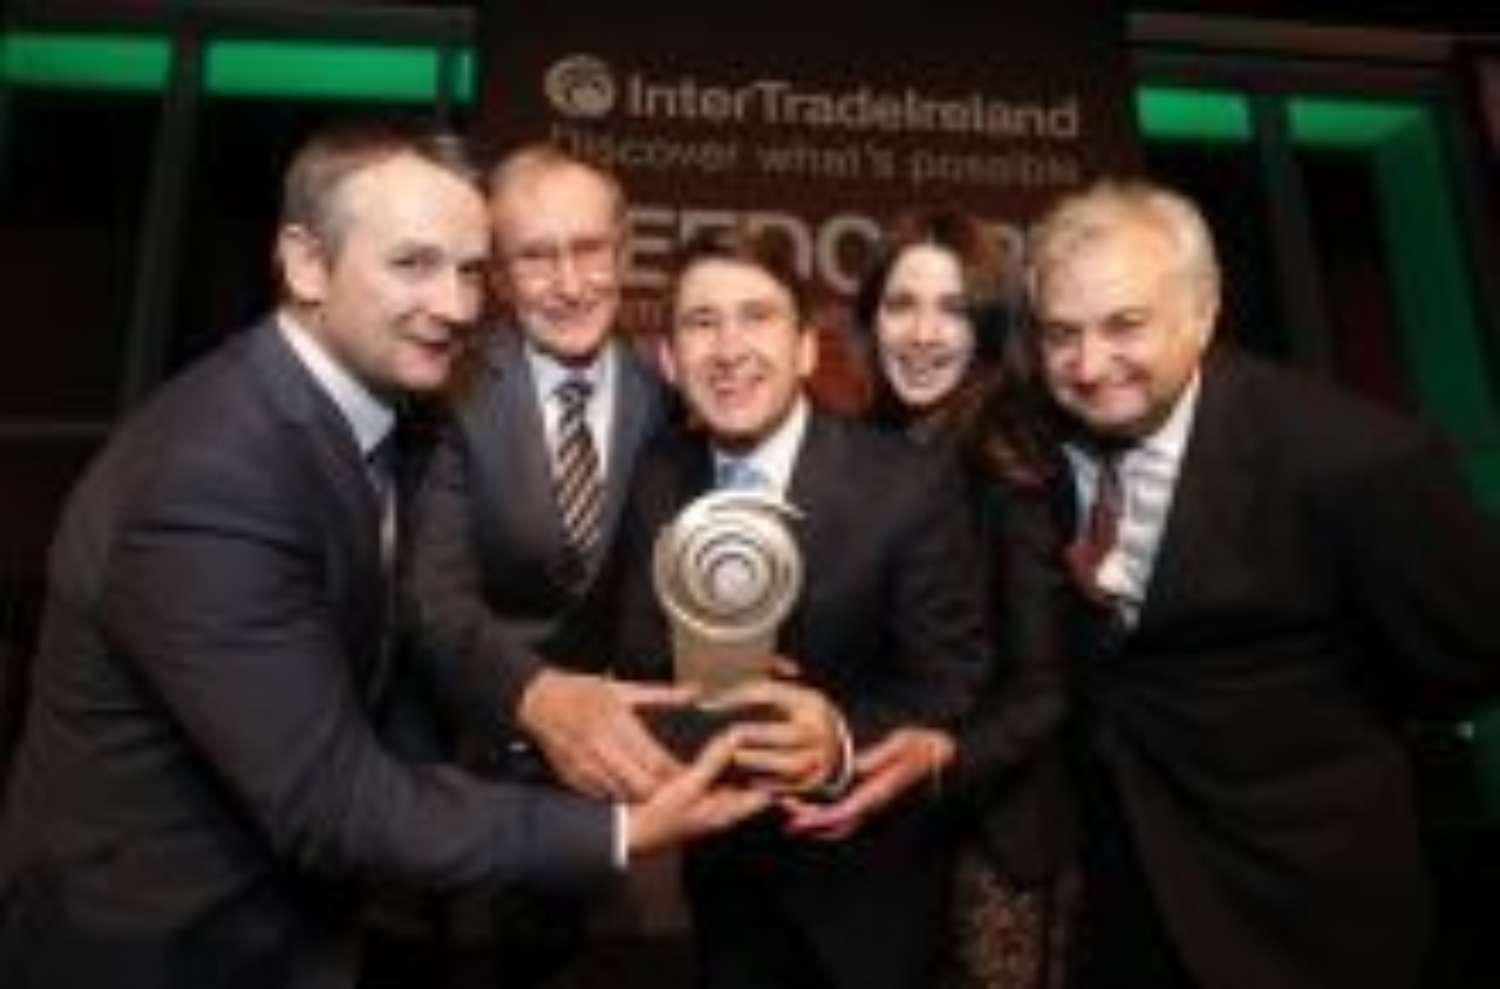 Dublin biotech firm Valitacell wins Inter Trade Ireland Seedcorn Competition